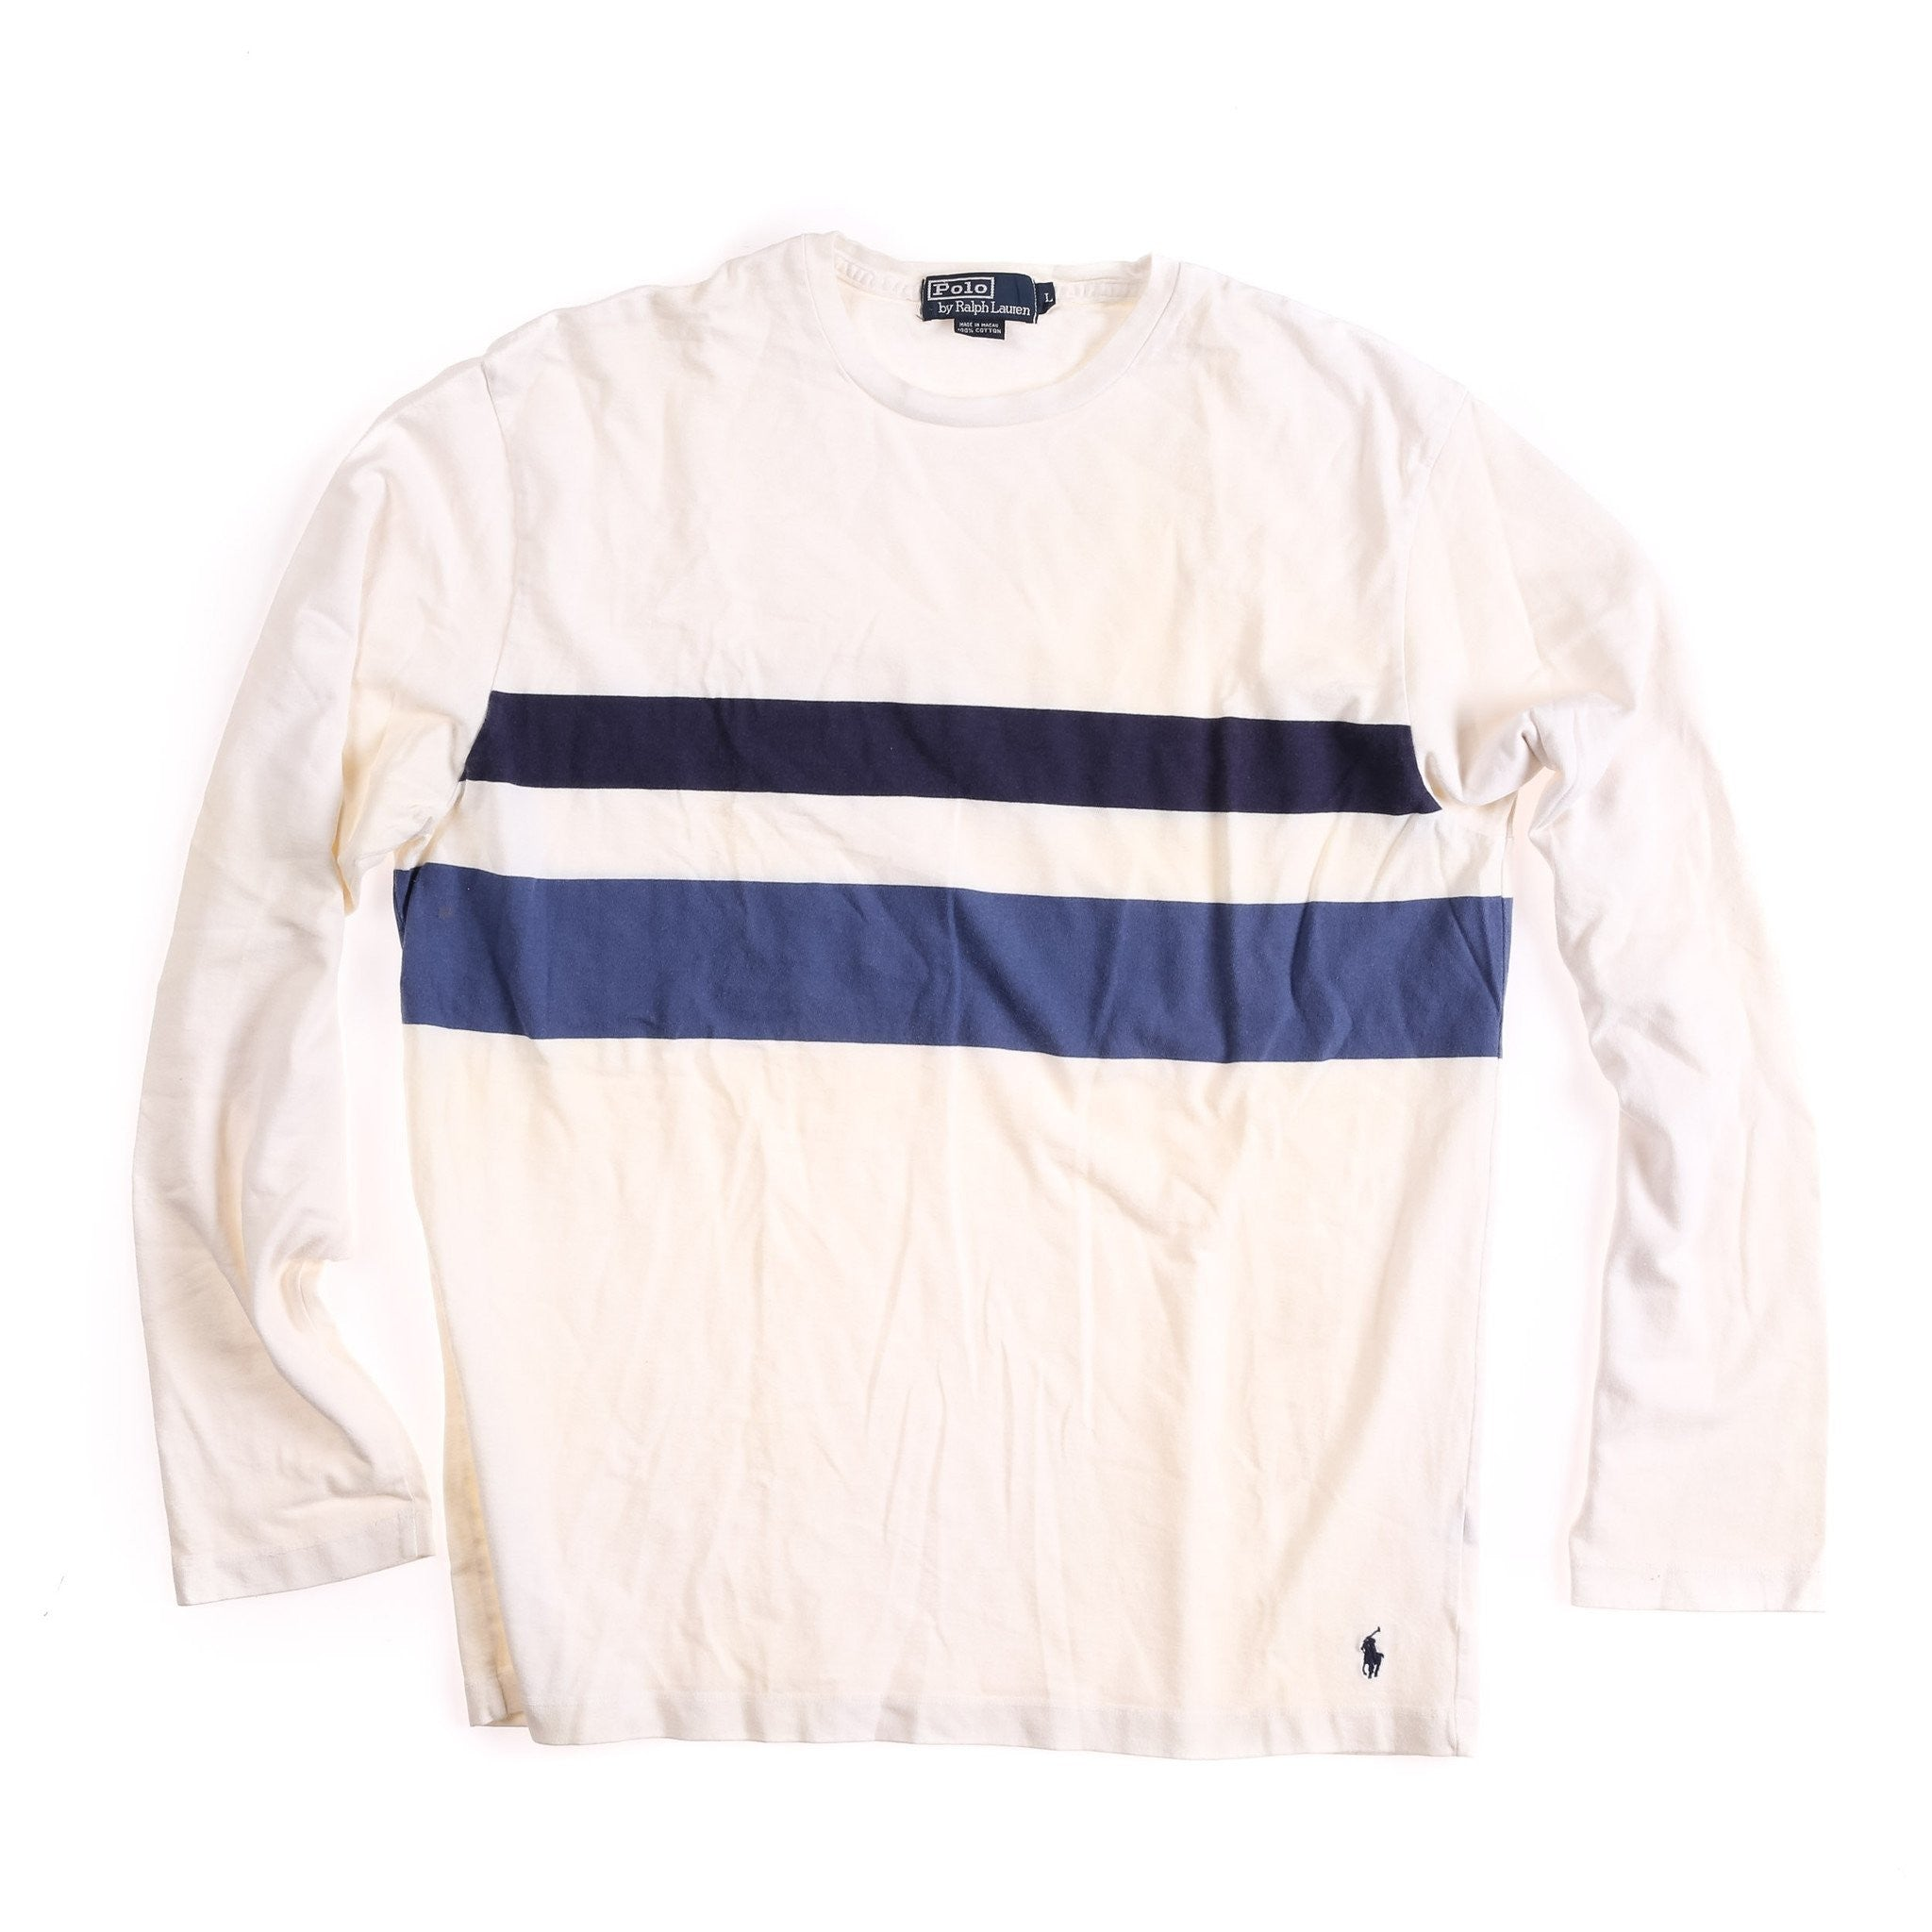 POLO STRIPED LS TEE // WHITE BLUE